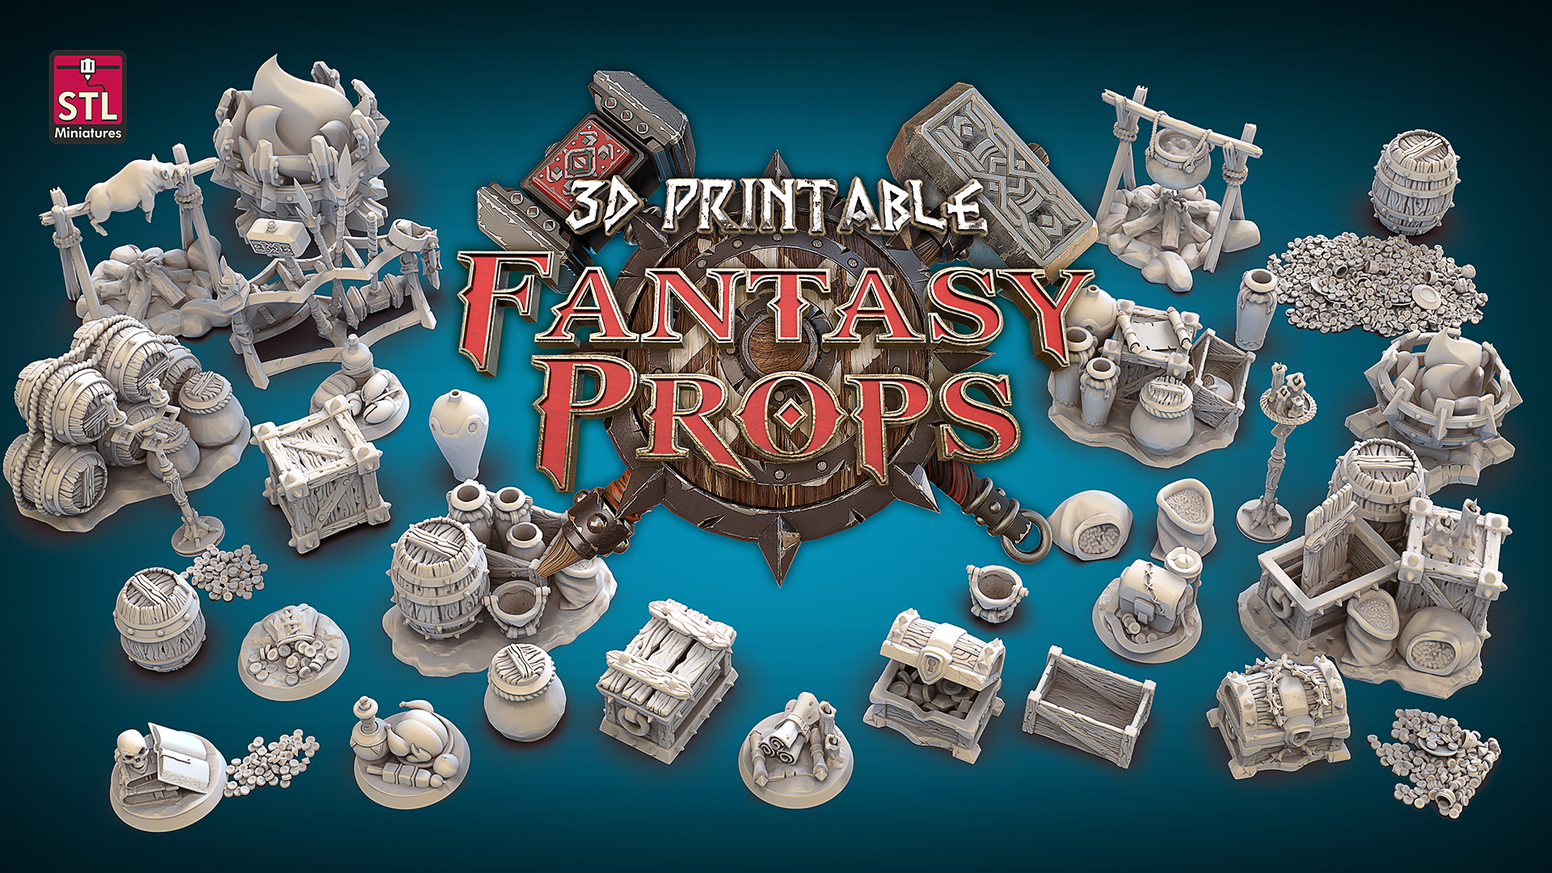 Print detailed props for your role-playing games!